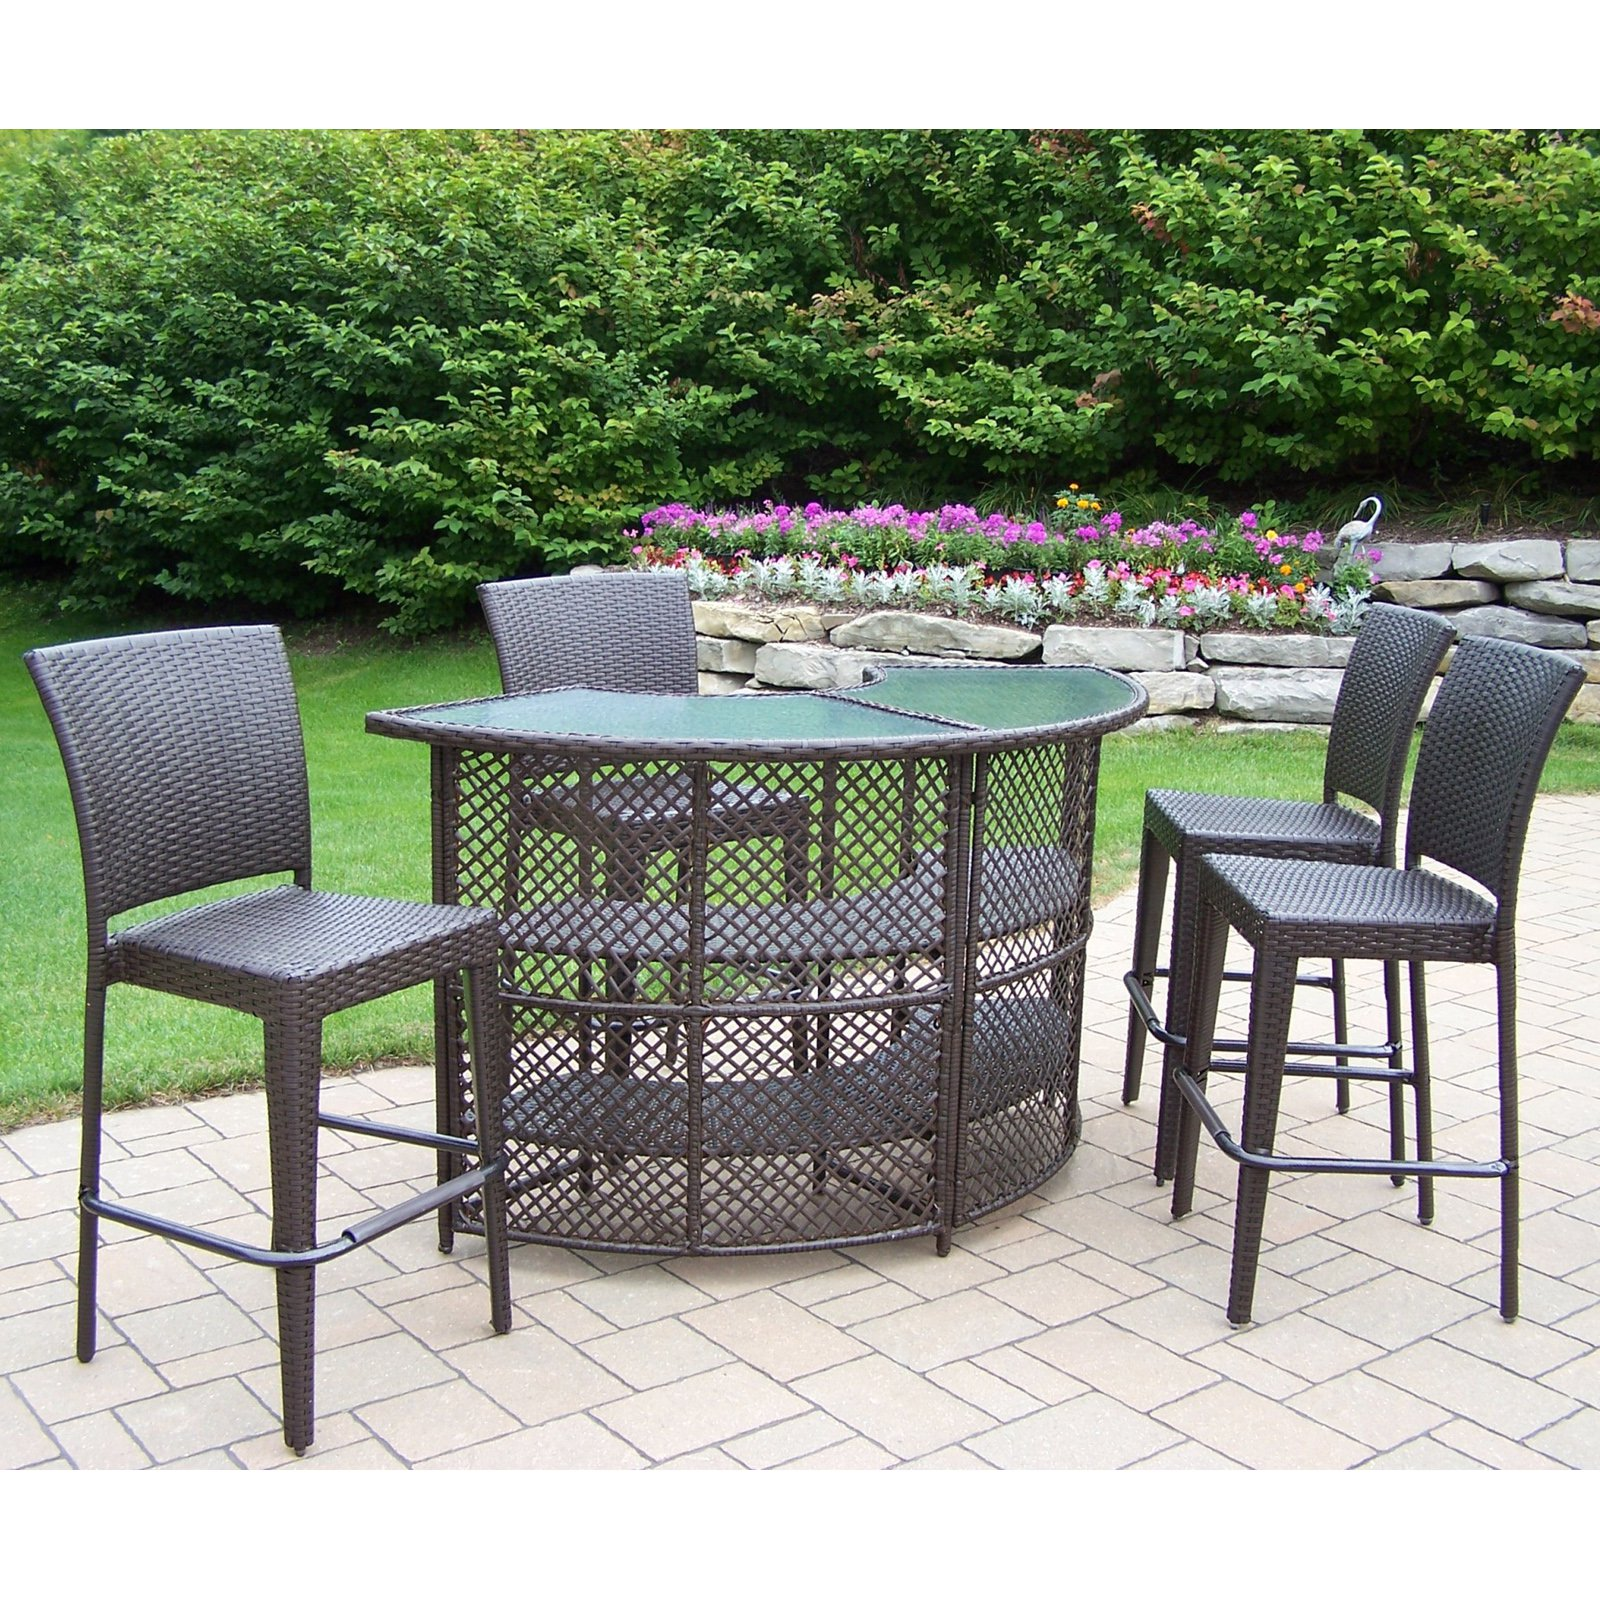 Charming Oakland Living All Weather Wicker Half Round Patio Bar Set